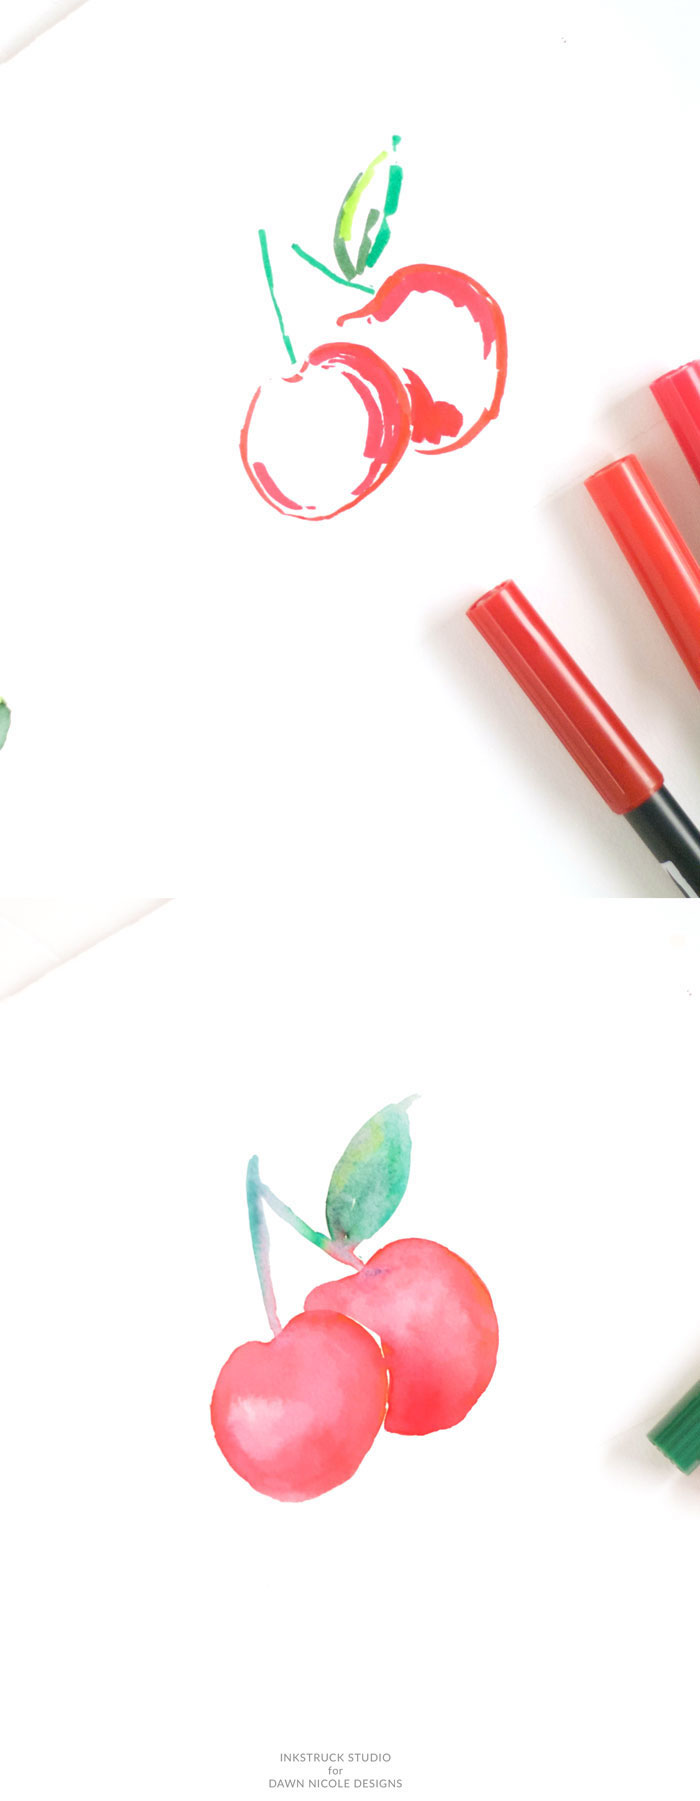 how to draw a cherry, step by step, diy tutorial, images to draw, red markers